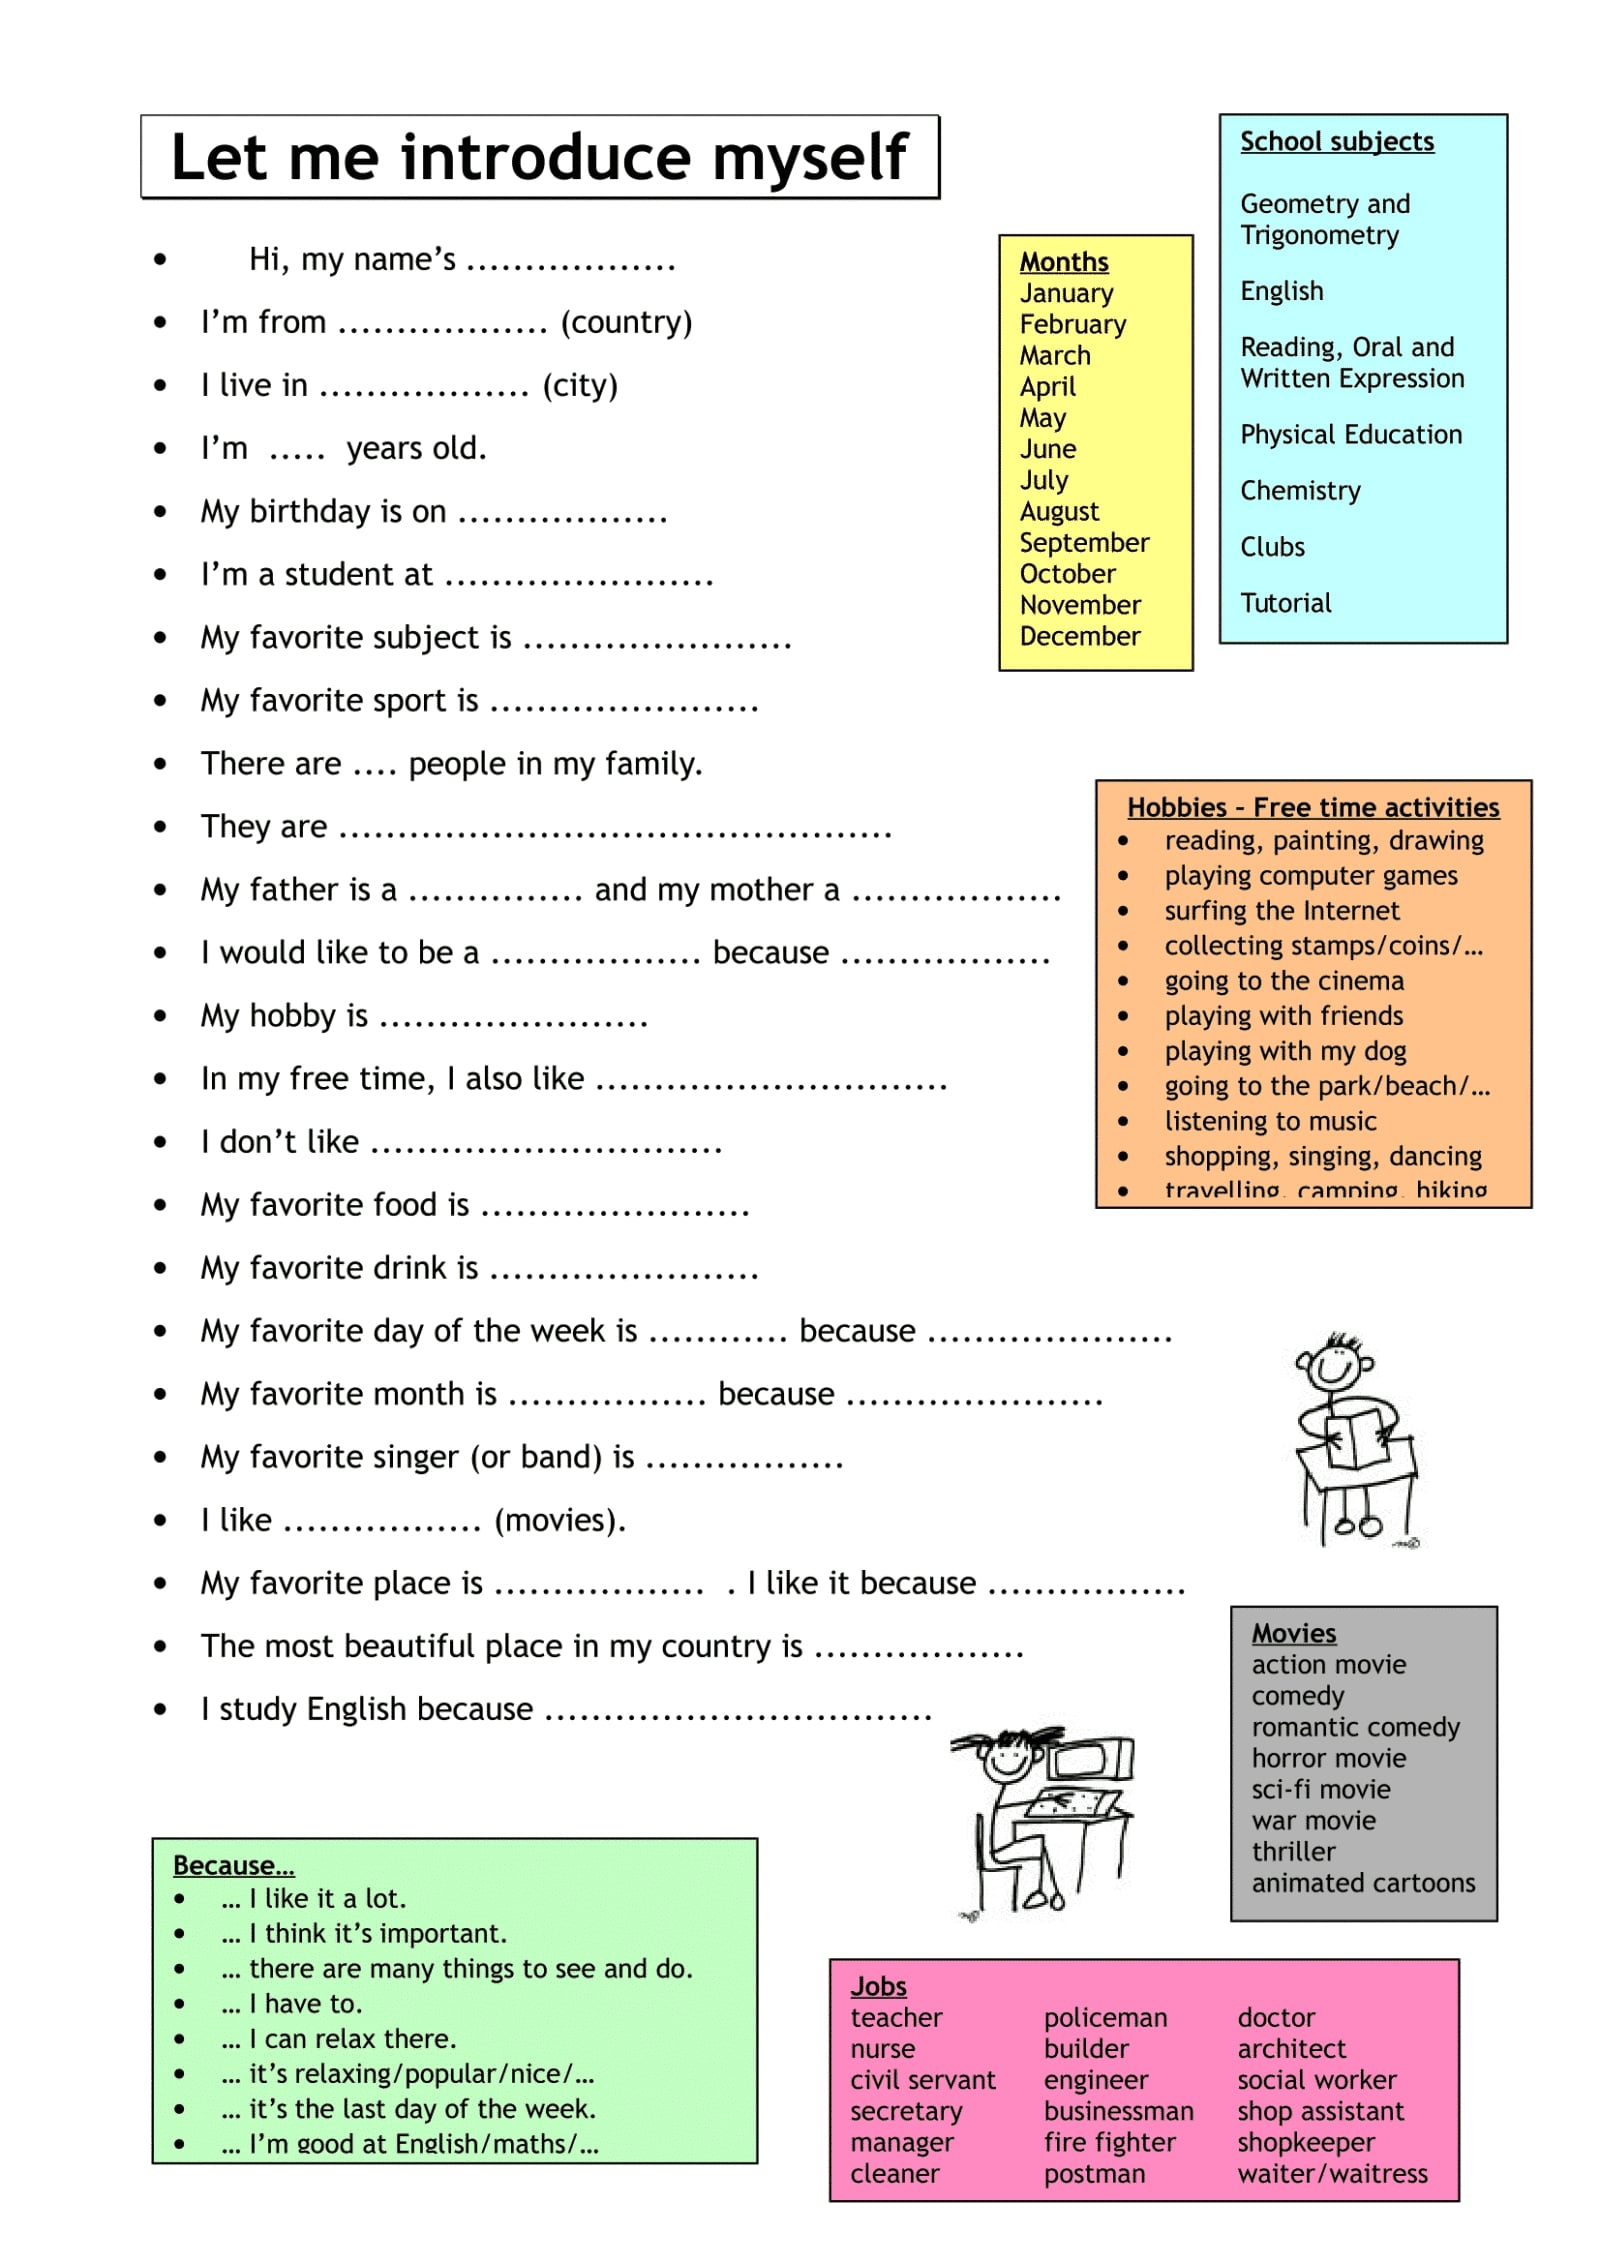 How to Introduce Yourself worksheets